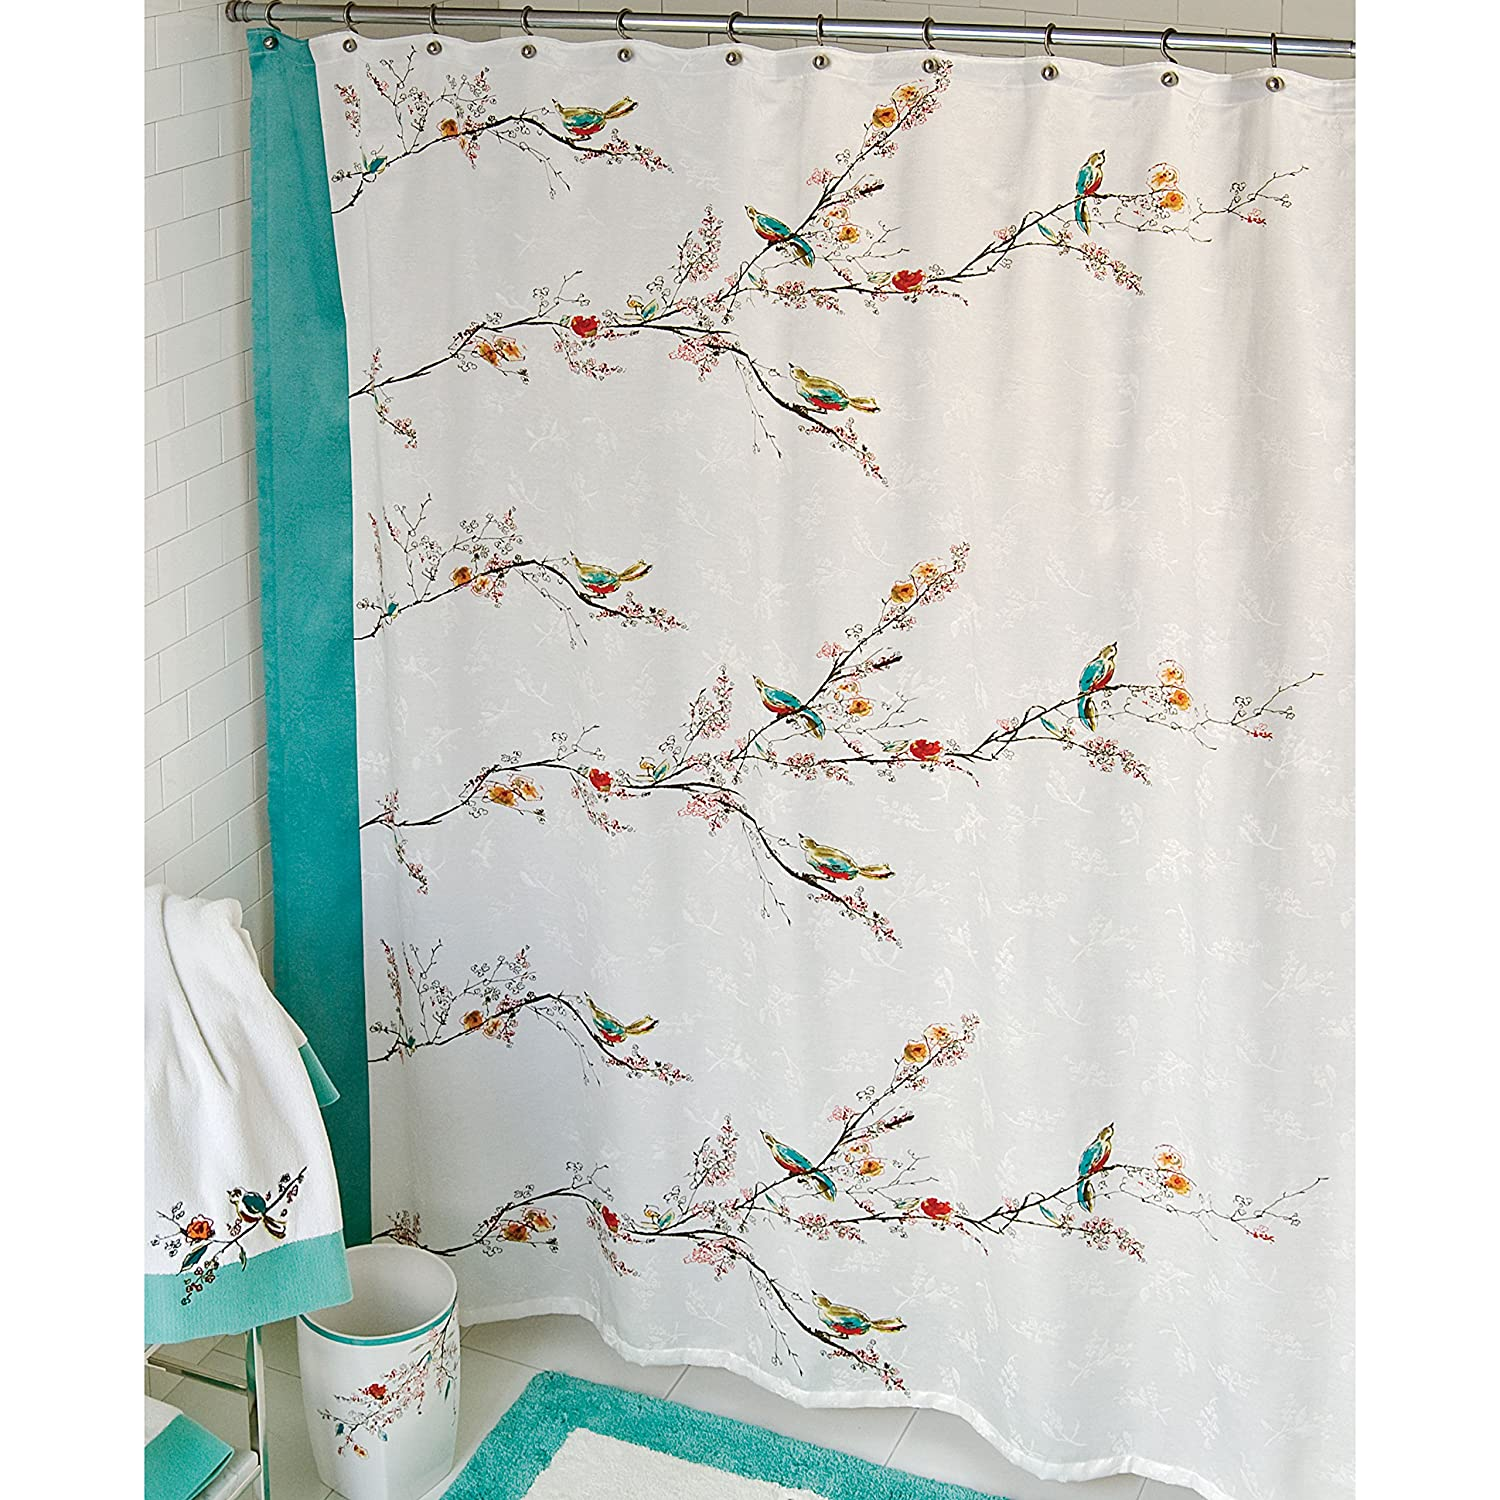 bird them birds curtain on curtains pottery birdcage meadow botanical ideas lofty barn with shower houses